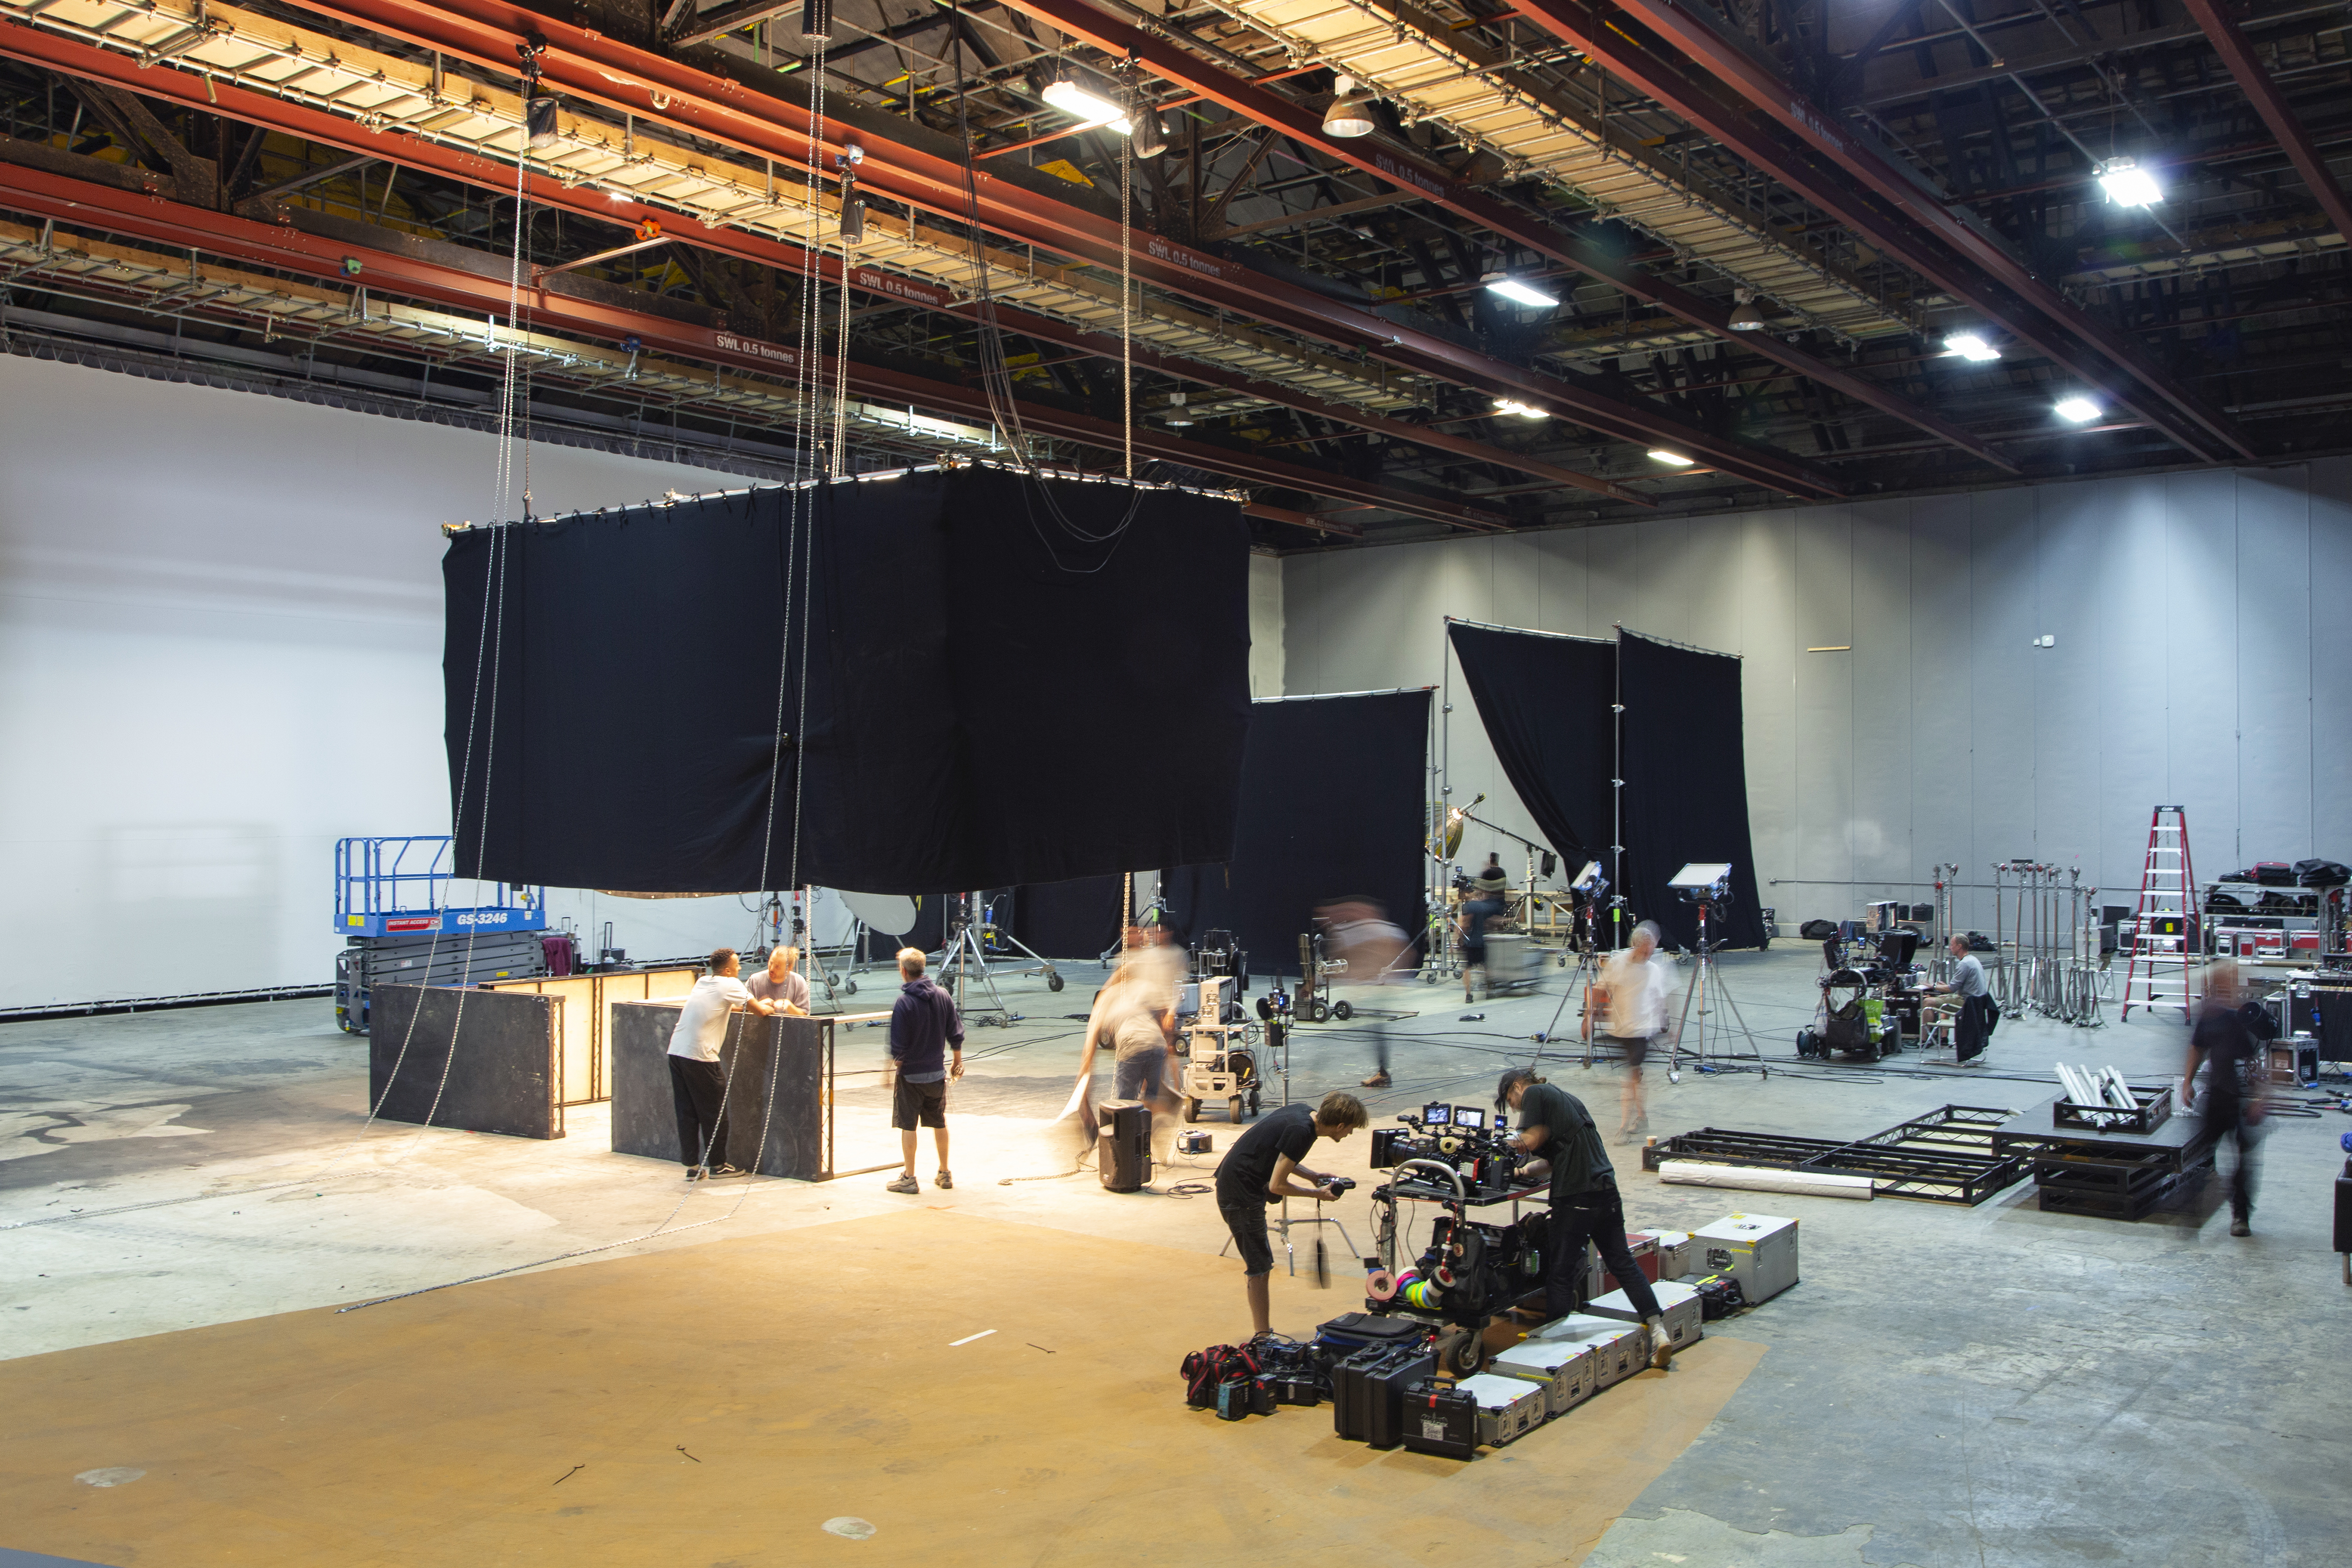 Busy film studio with large hanging drapes